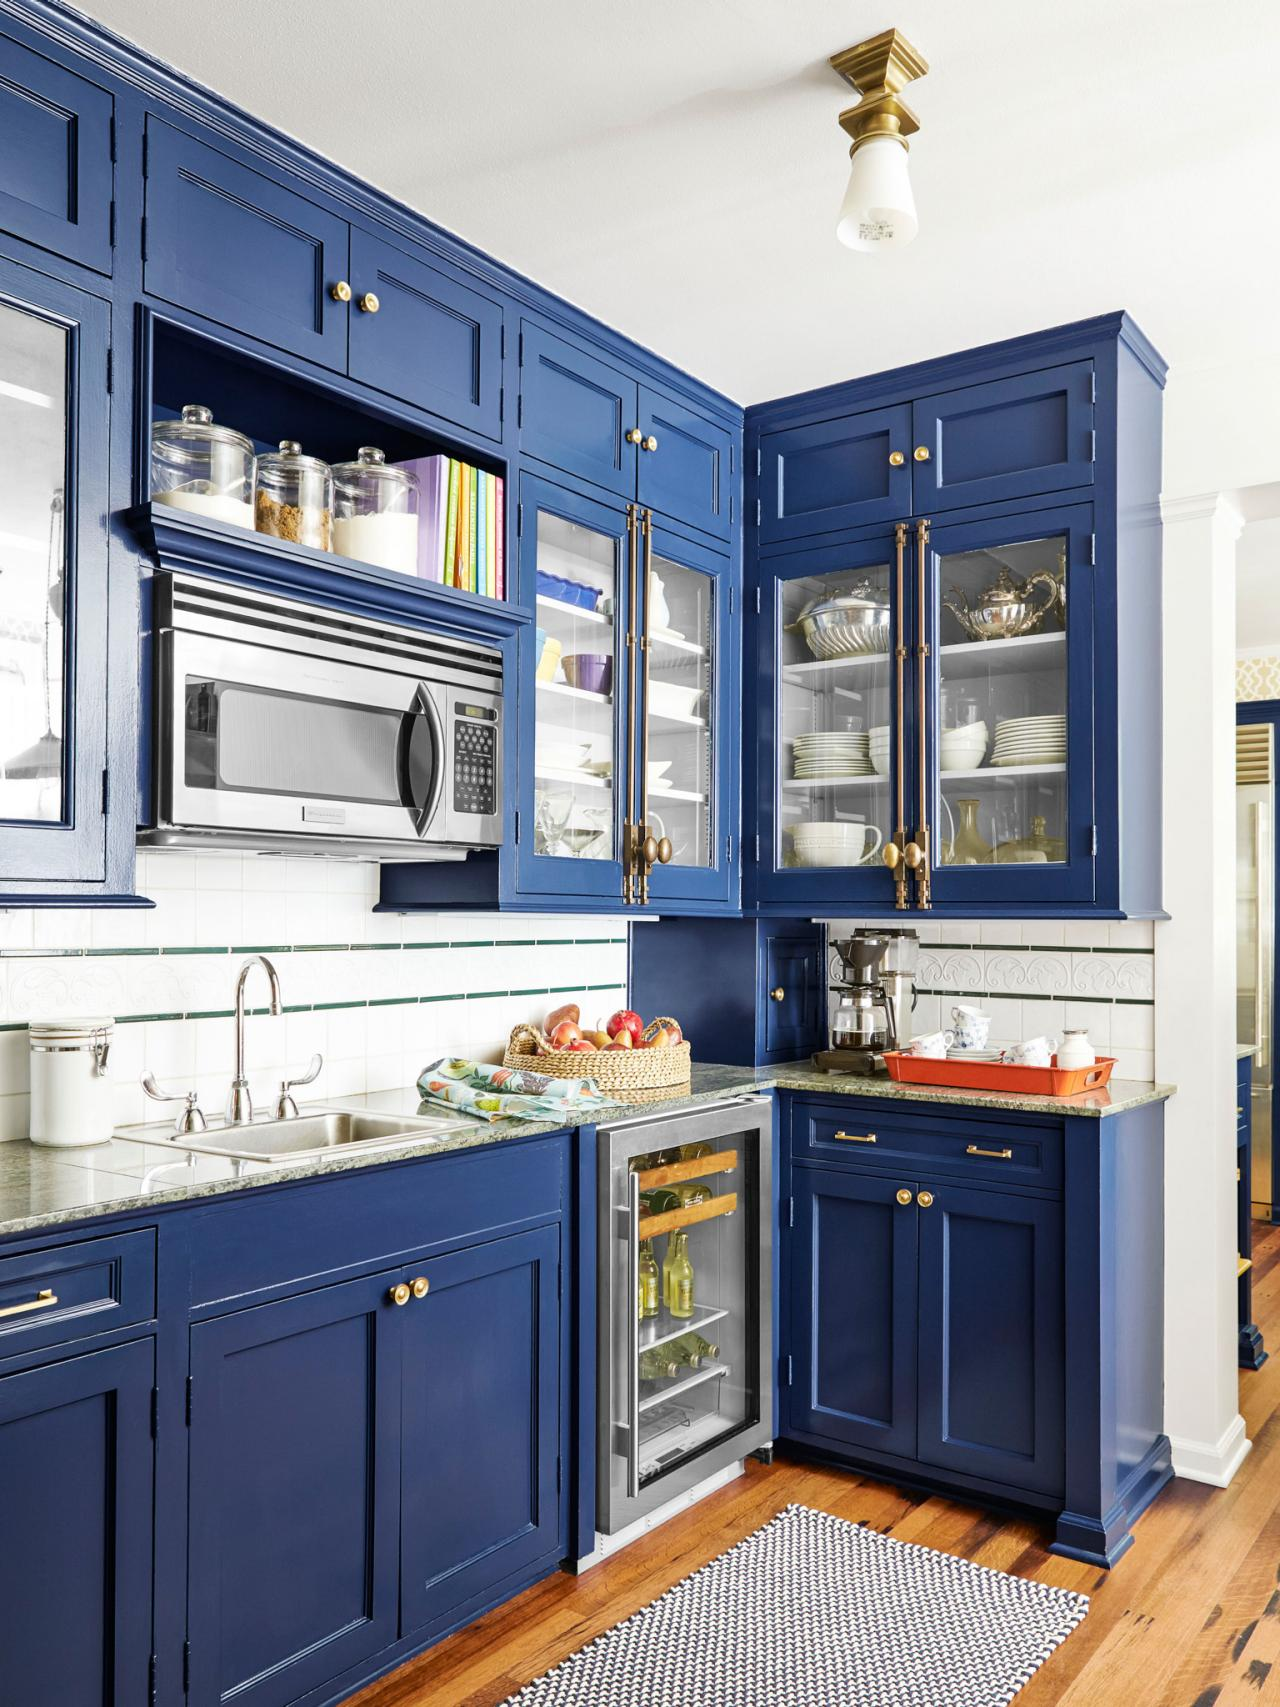 How to paint cabinets hgtv for Blue kitchen paint ideas